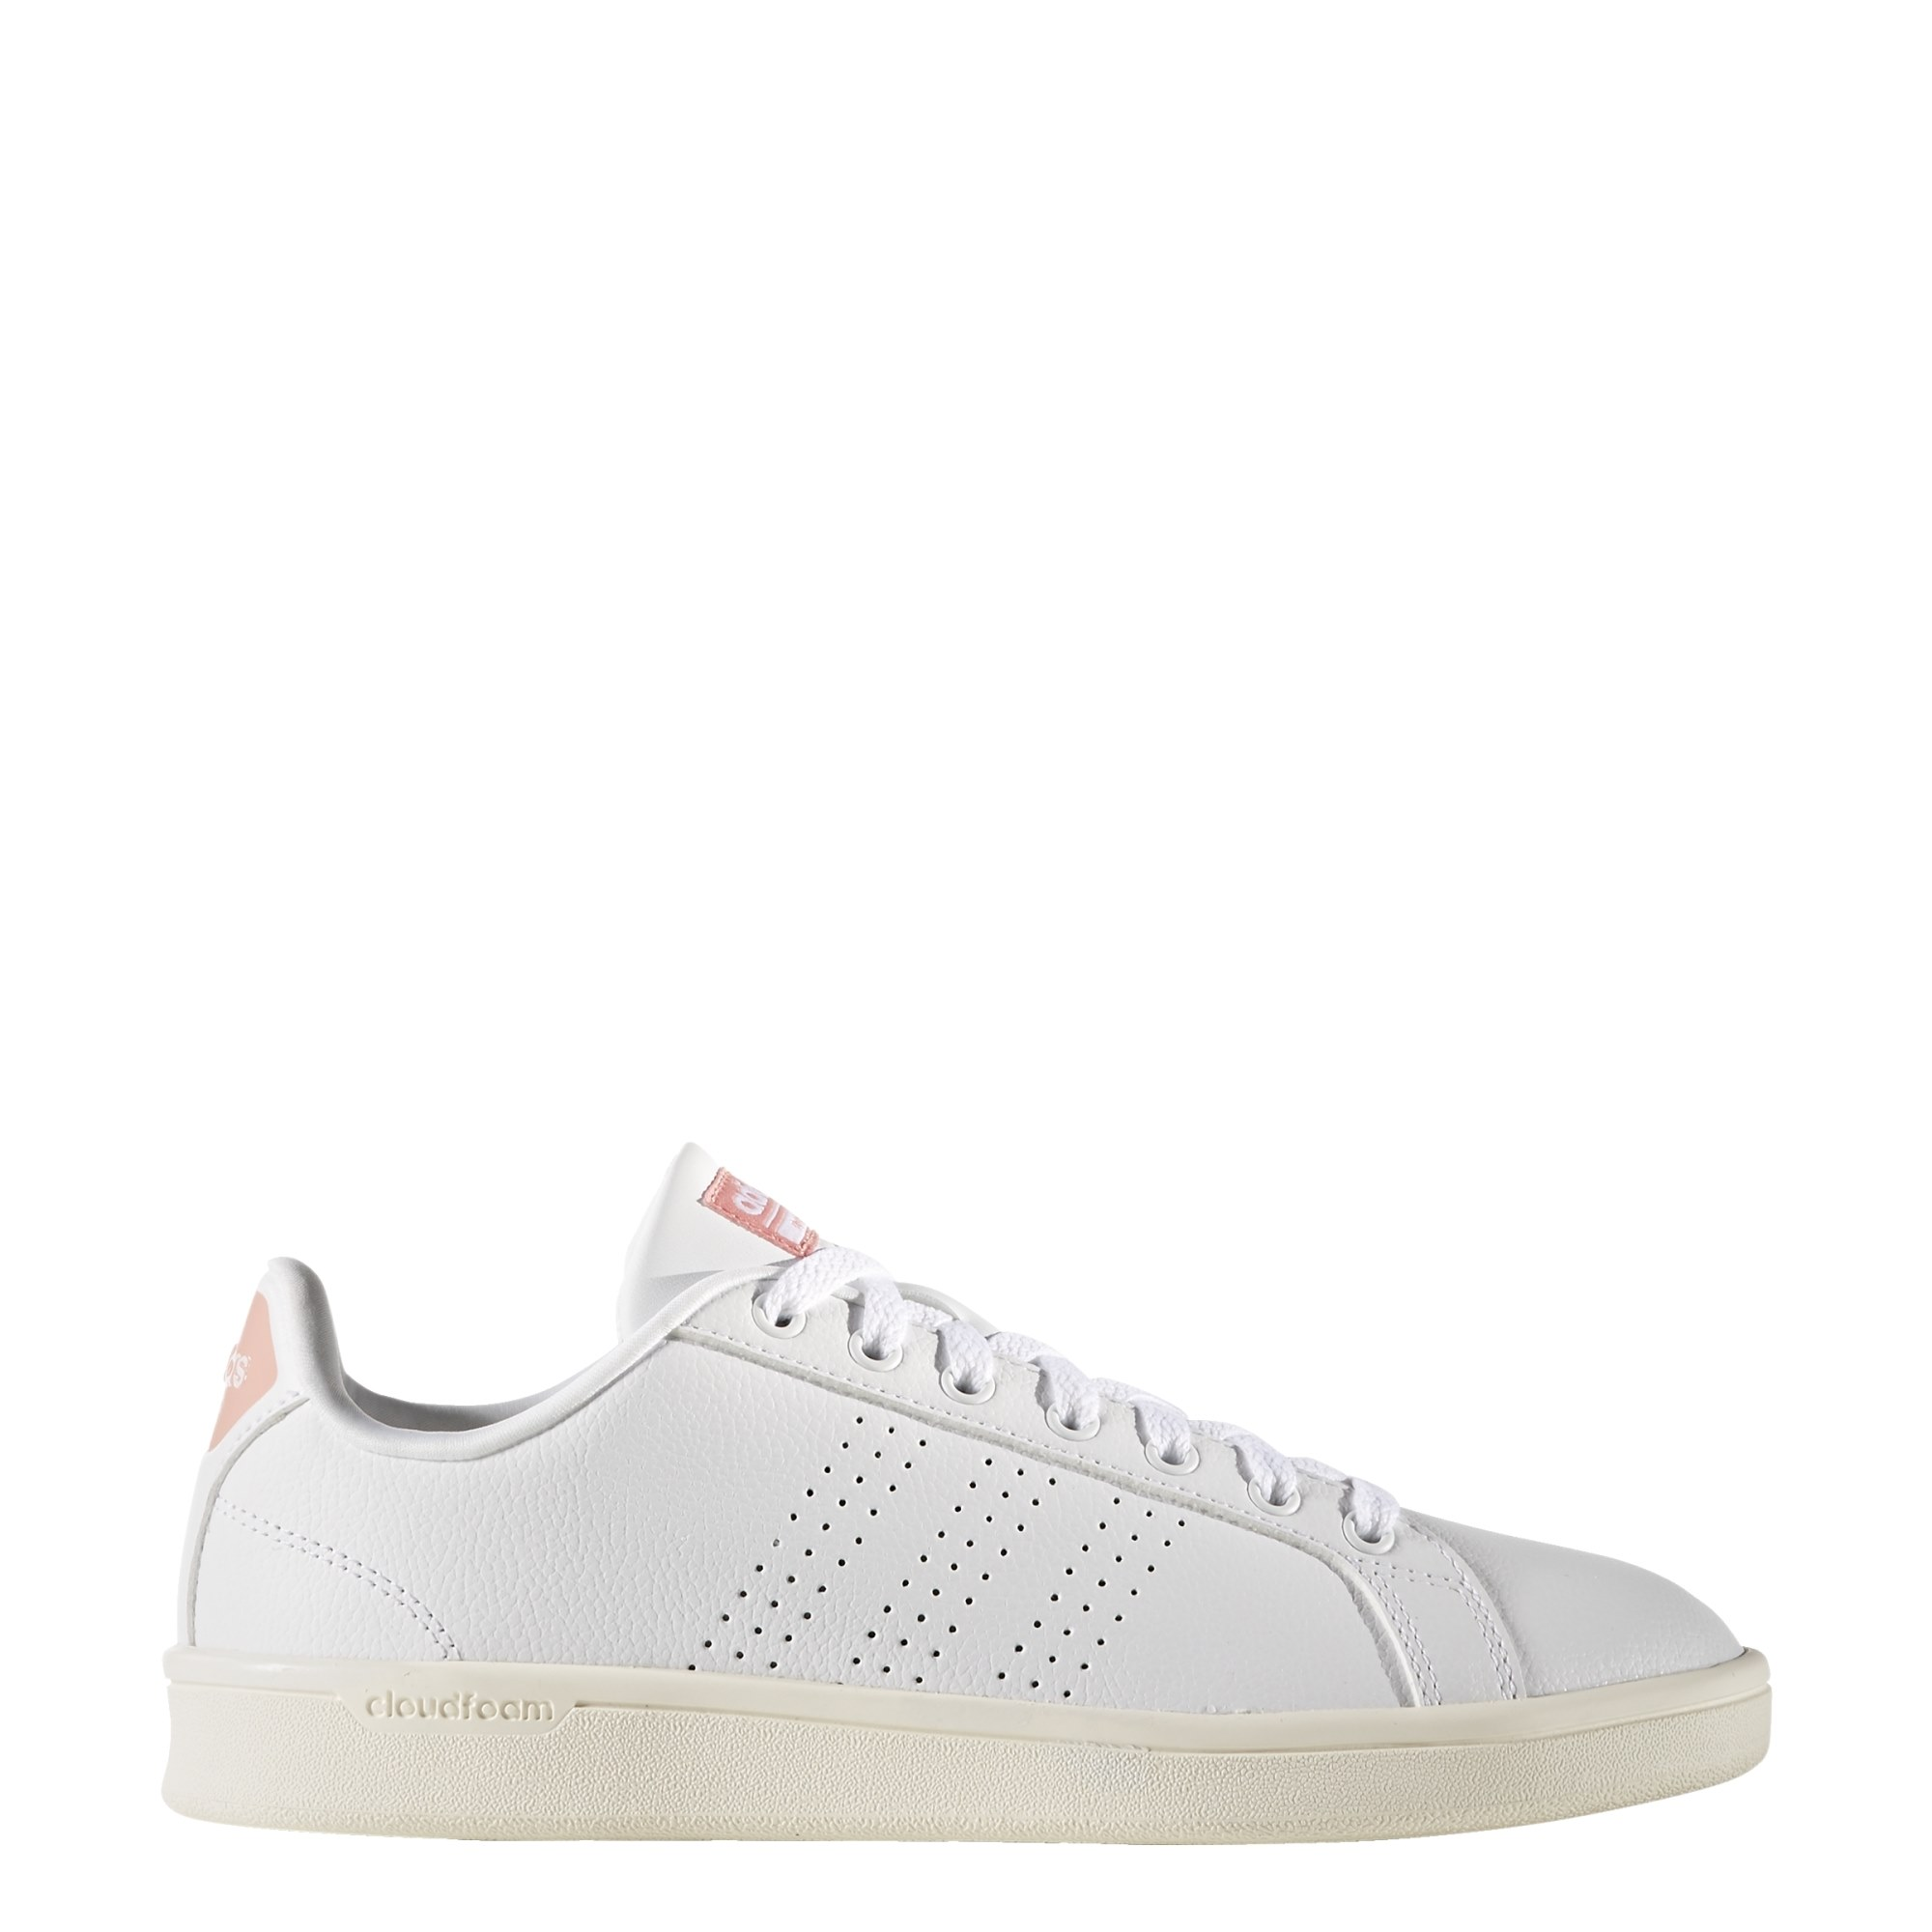 Adidas Cloudfoam Advantage Dames sneakers